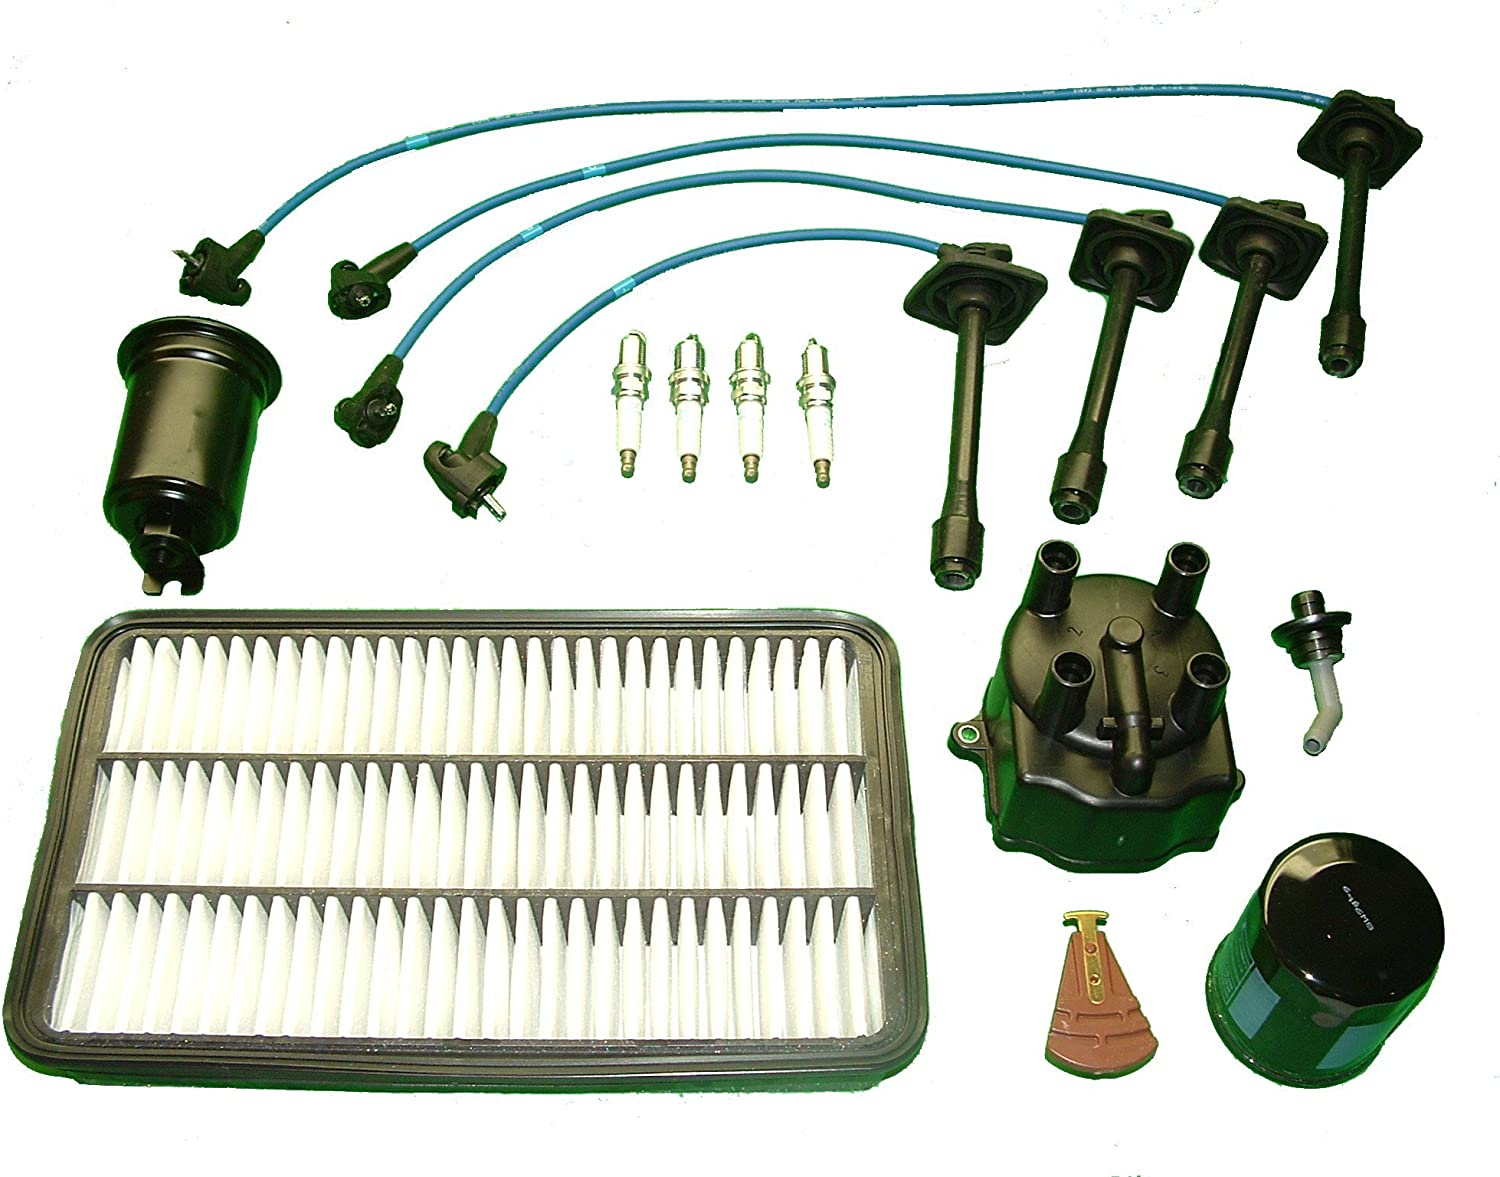 TBK Tune Up Kit Replacement for Toyota Camry 4 Cylinder 2.2L 5SFE 1995